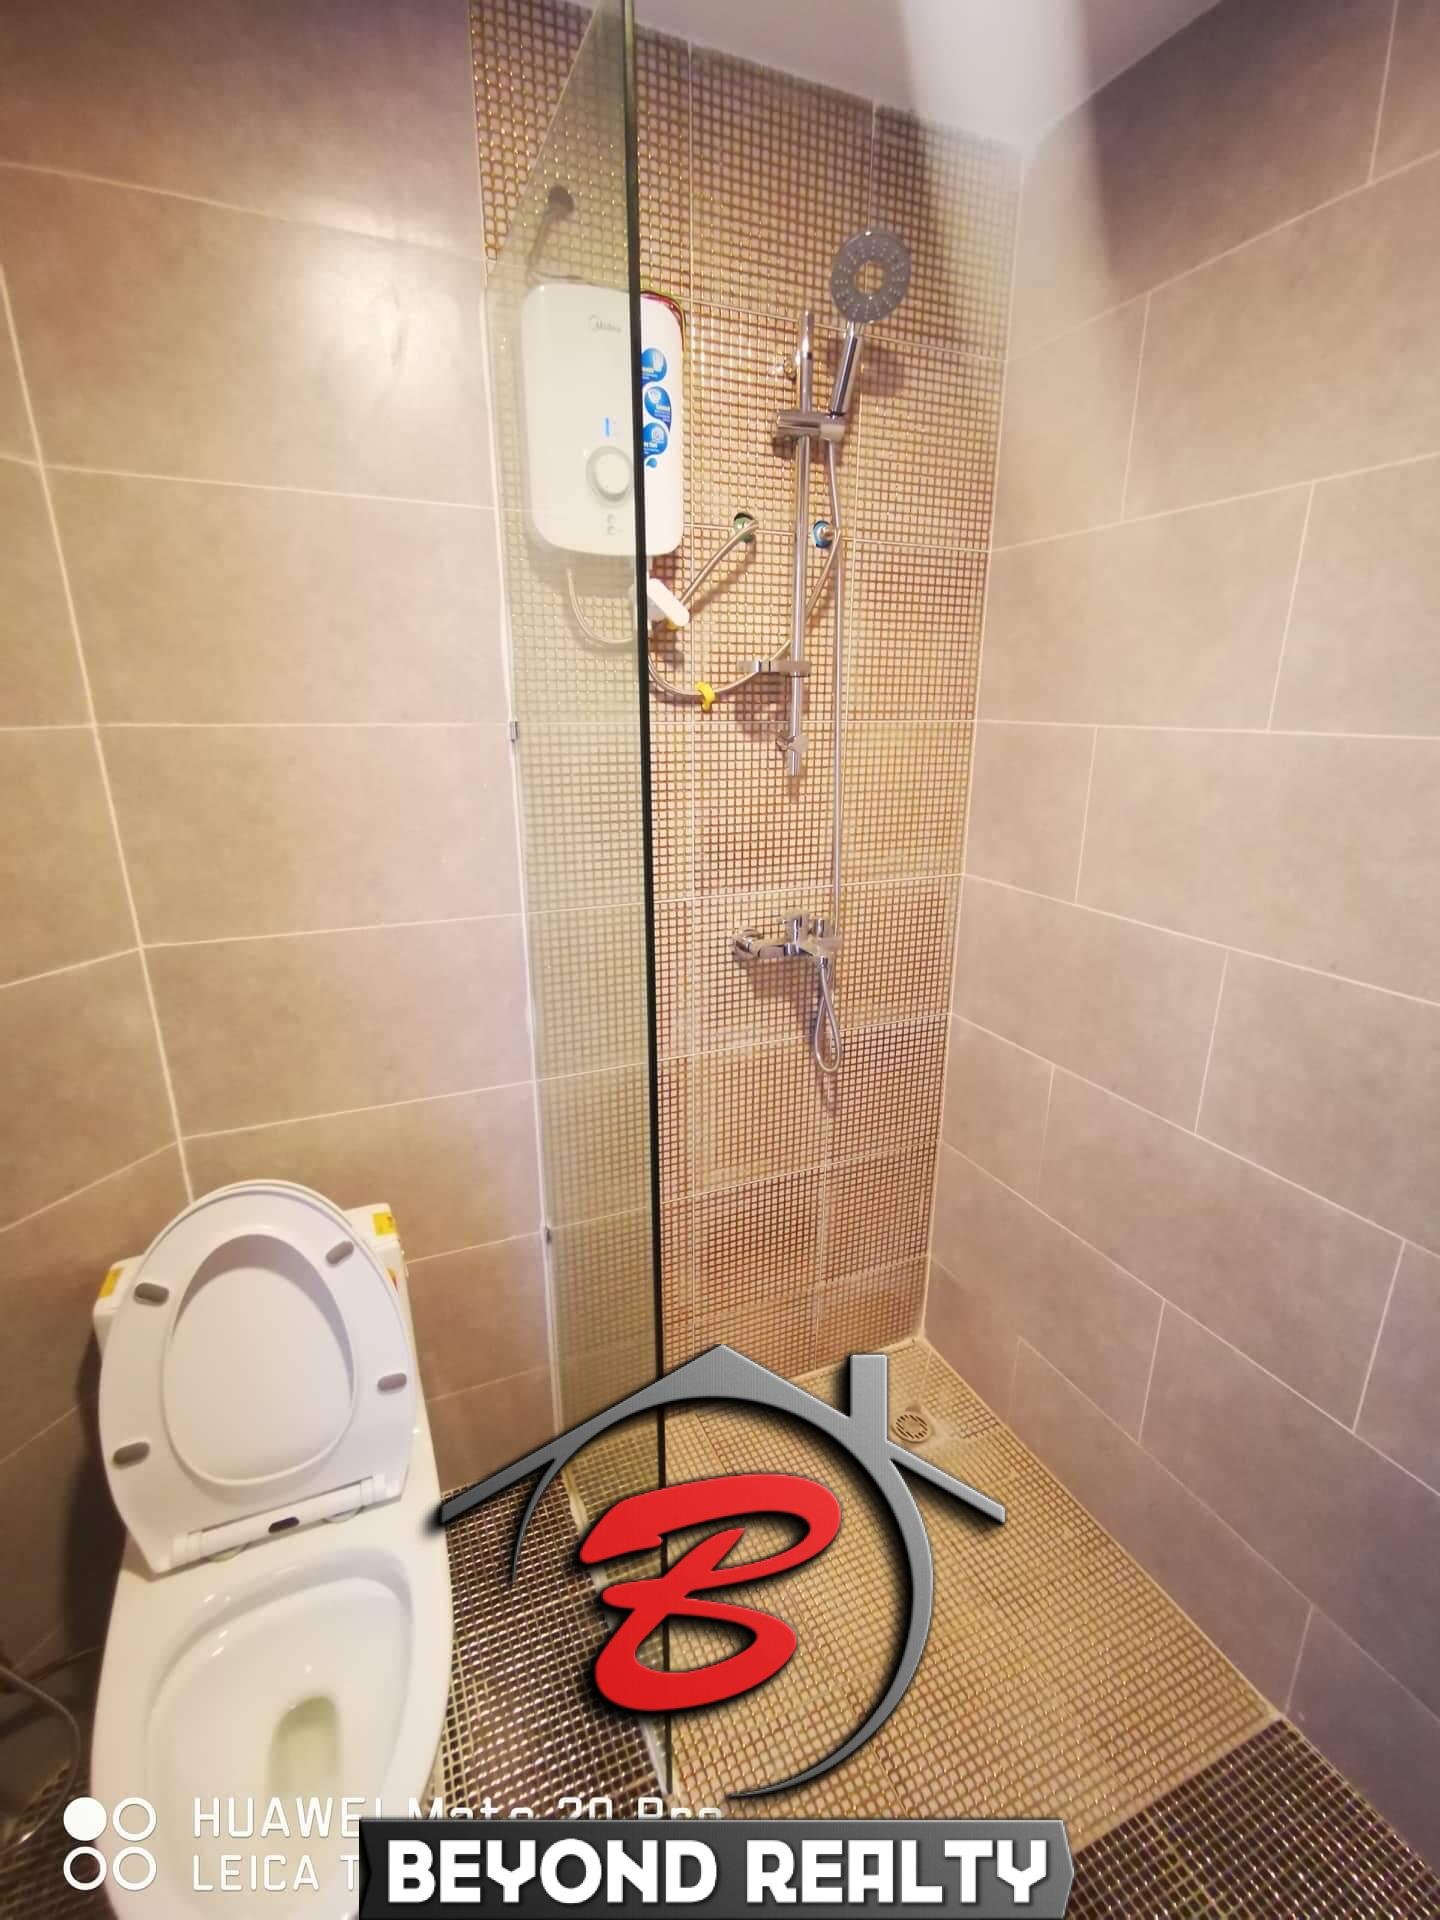 the bathroom of the 1br serviced condo for rent in Boeung Tompun Phnom Penh Cambodia